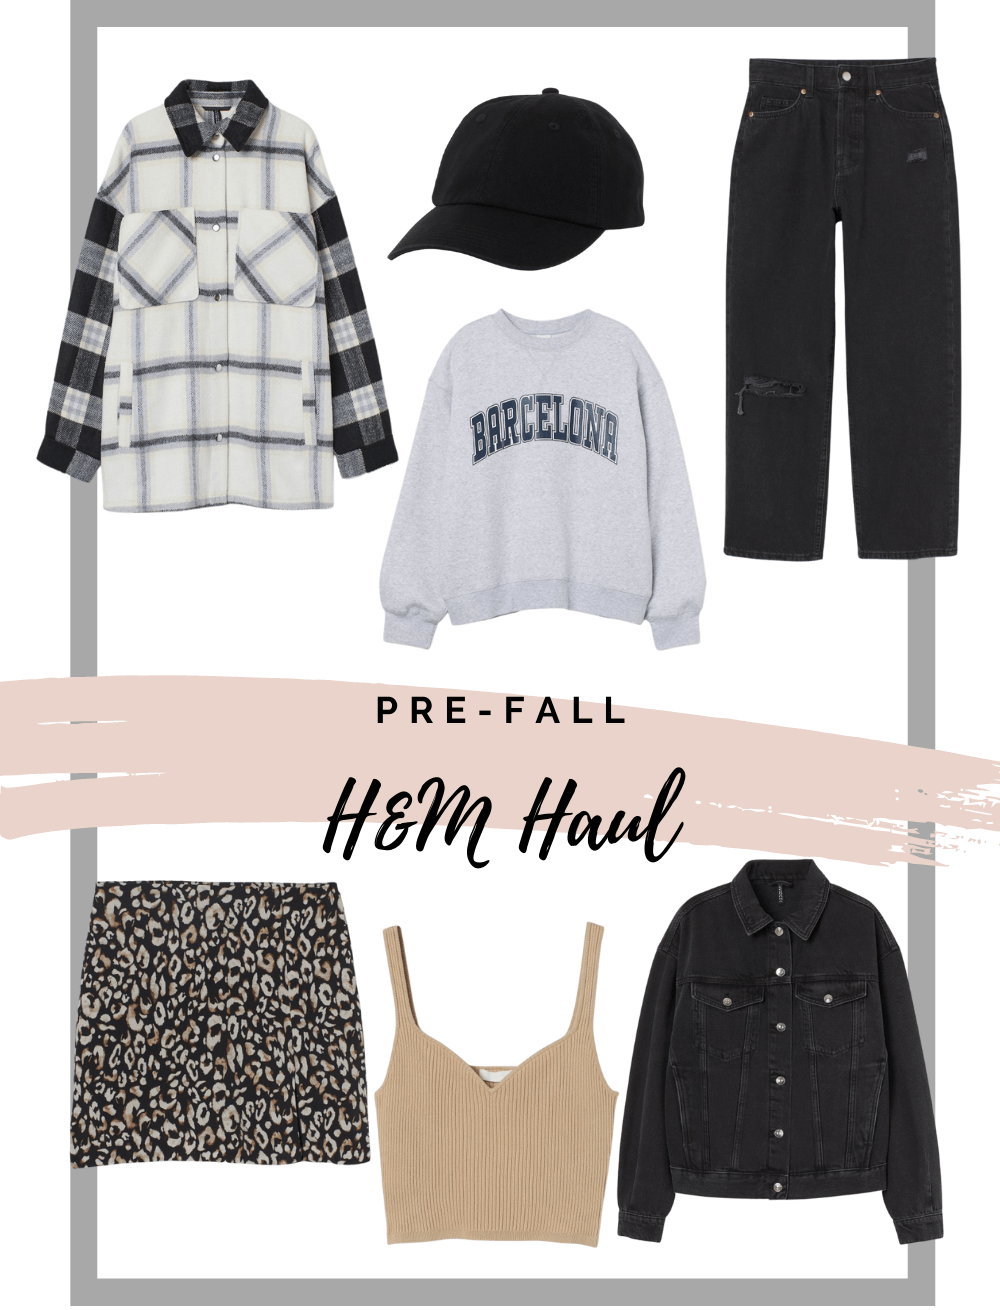 There have been so many cute fall looks on social media lately and I decided to get on board and buy some cold-weather outfits. I hope you enjoy this little pre-fall H&M haul!